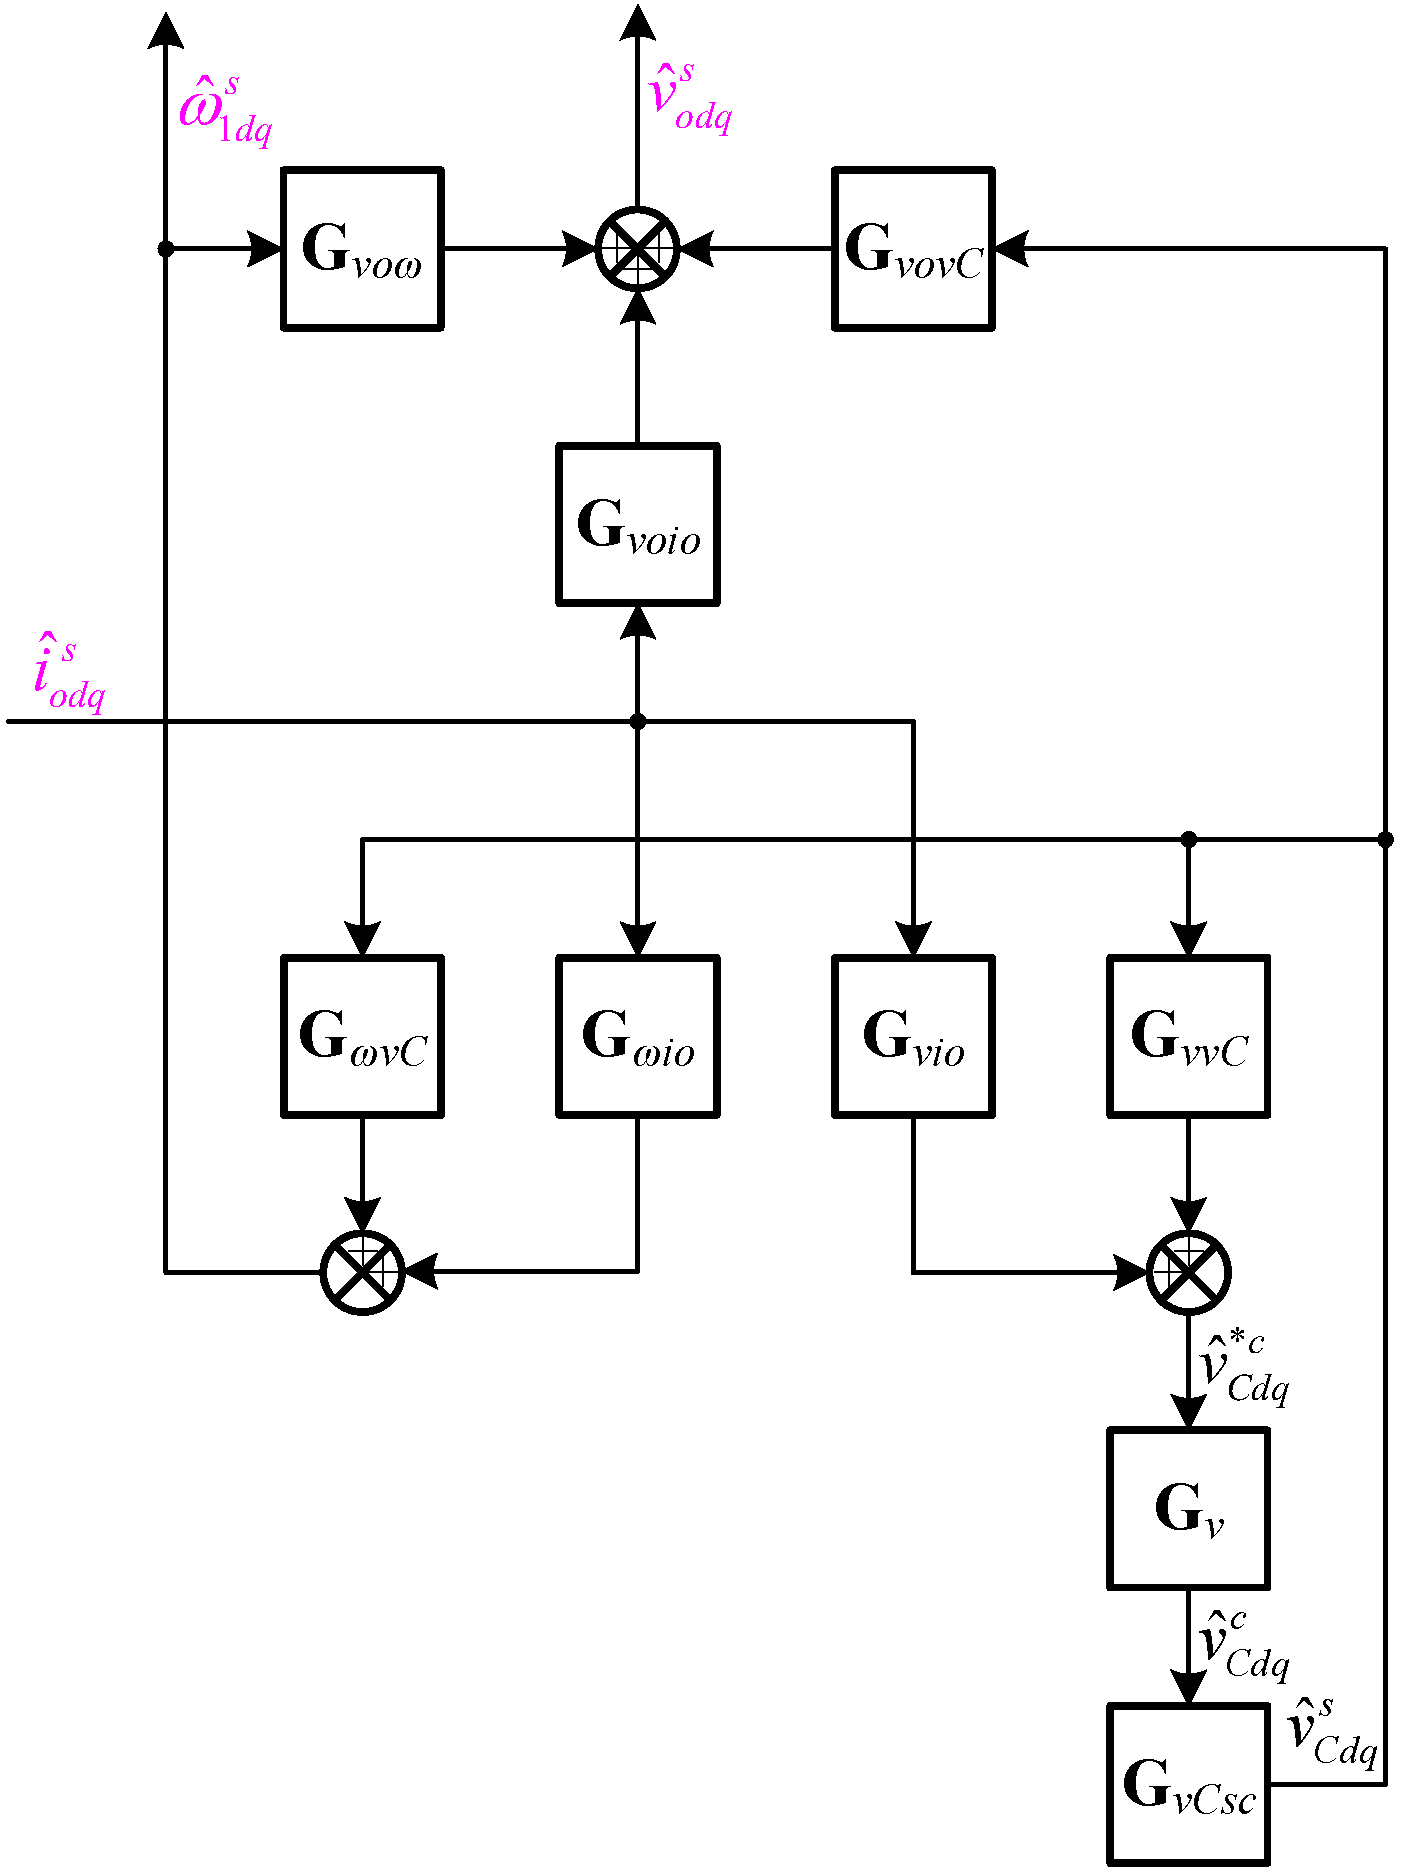 Image of block diagram of the small-signal model of the three-phase droop